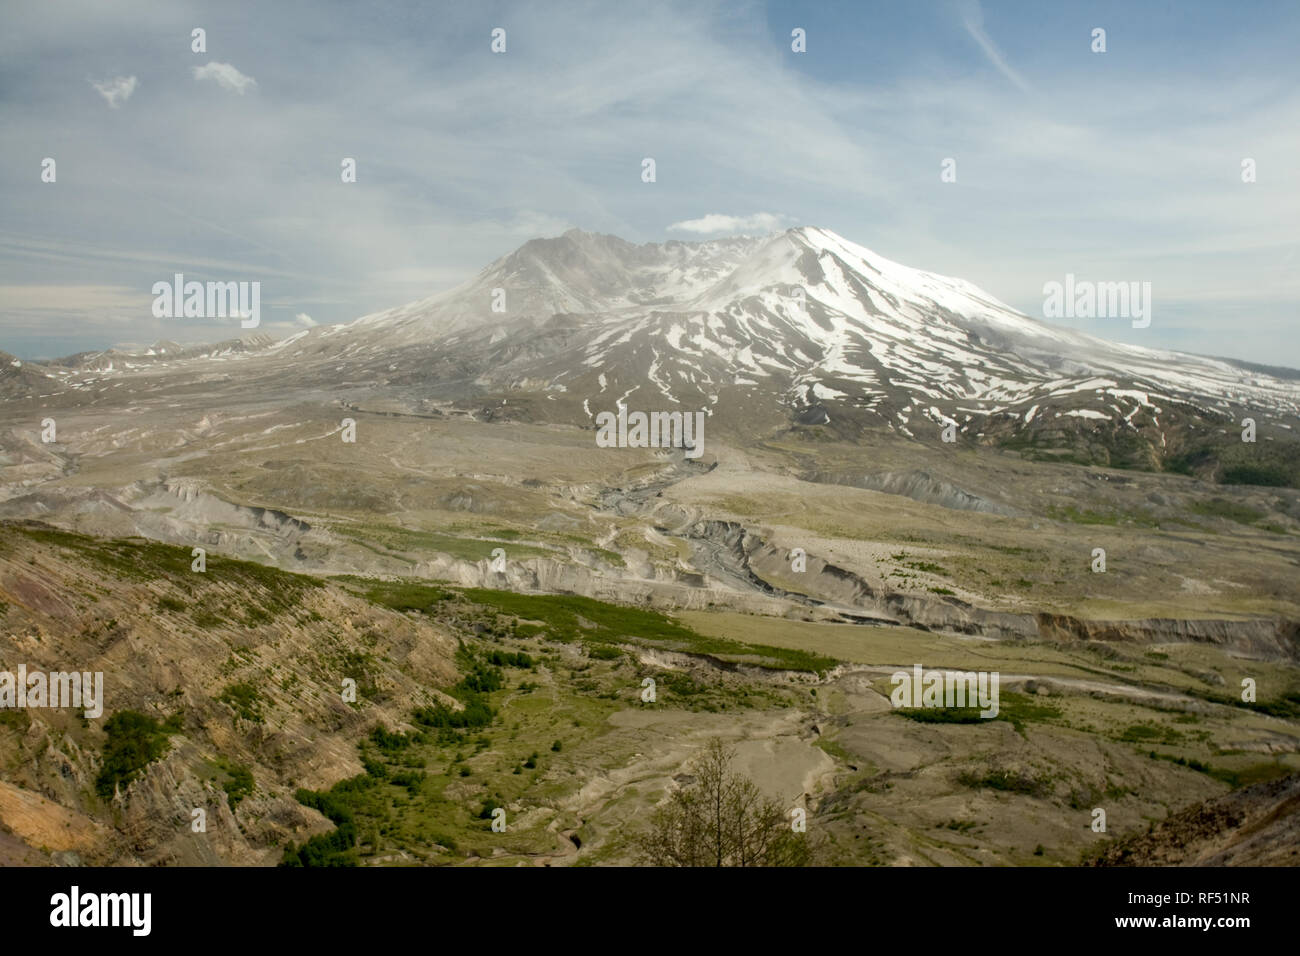 Desolation still blankets the land as a new cinder cone forms within the crater of Mount Saint Helens. - Stock Image